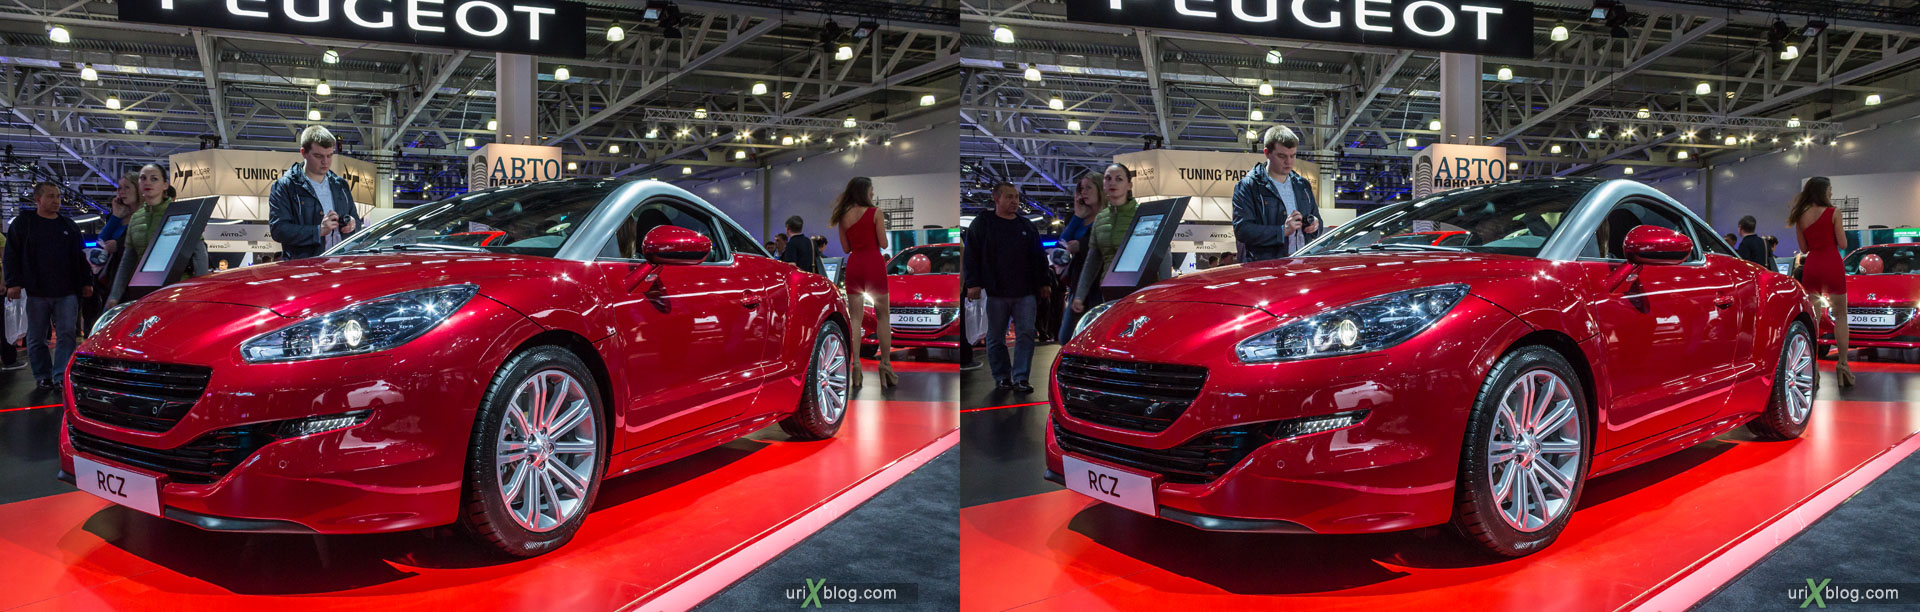 Peugeot RCZ, Moscow International Automobile Salon 2014, MIAS 2014, girls, models, Crocus Expo, Moscow, Russia, 3D, stereo pair, cross-eyed, crossview, cross view stereo pair, stereoscopic, 2014